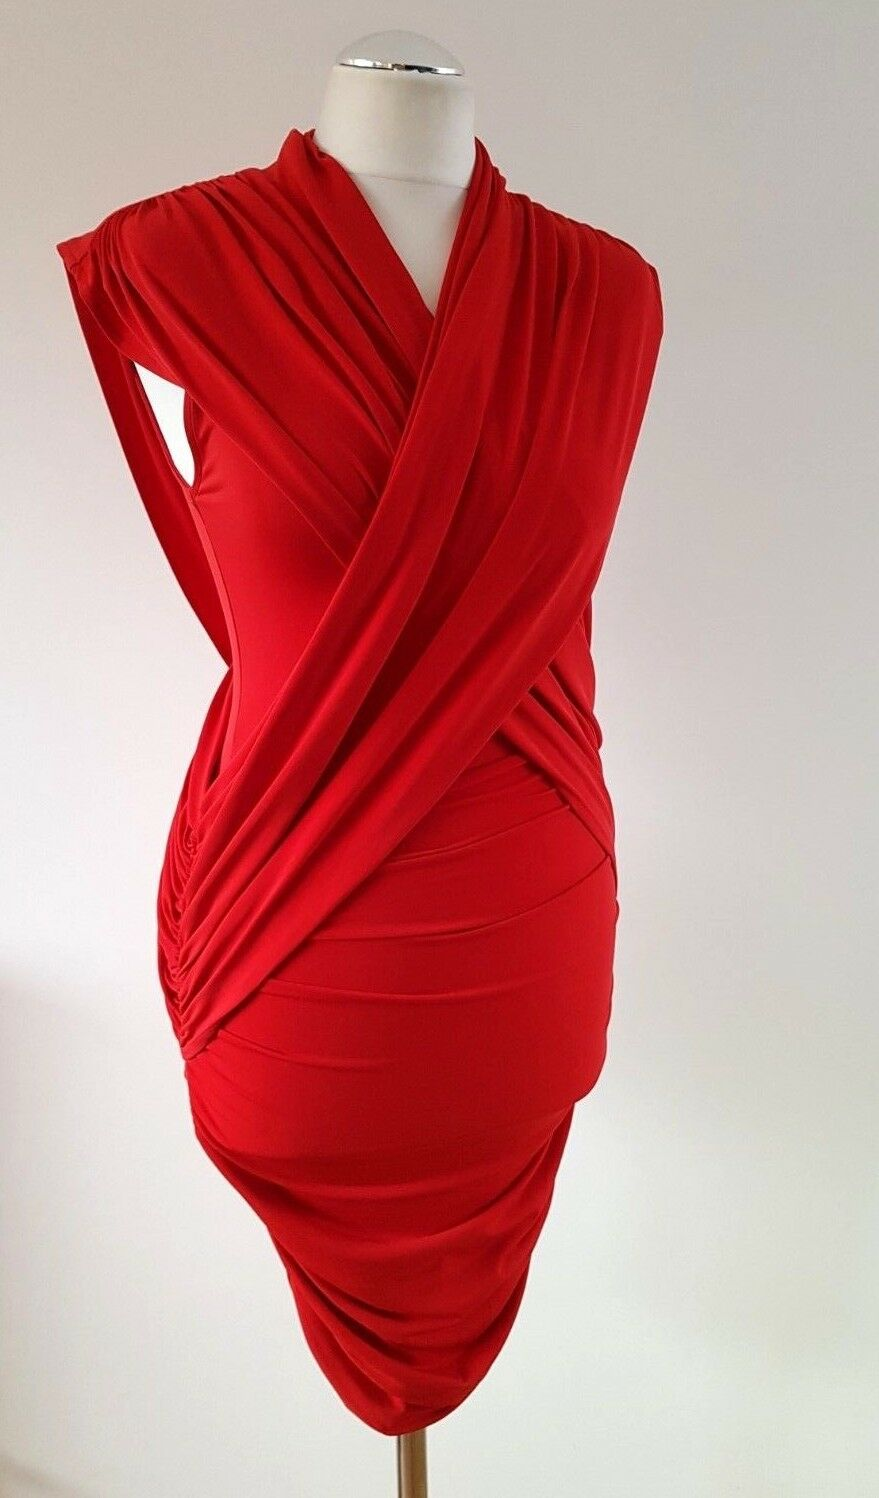 French Connection Red Bodycon Ruched Stretchy Party Sleeveless Dress